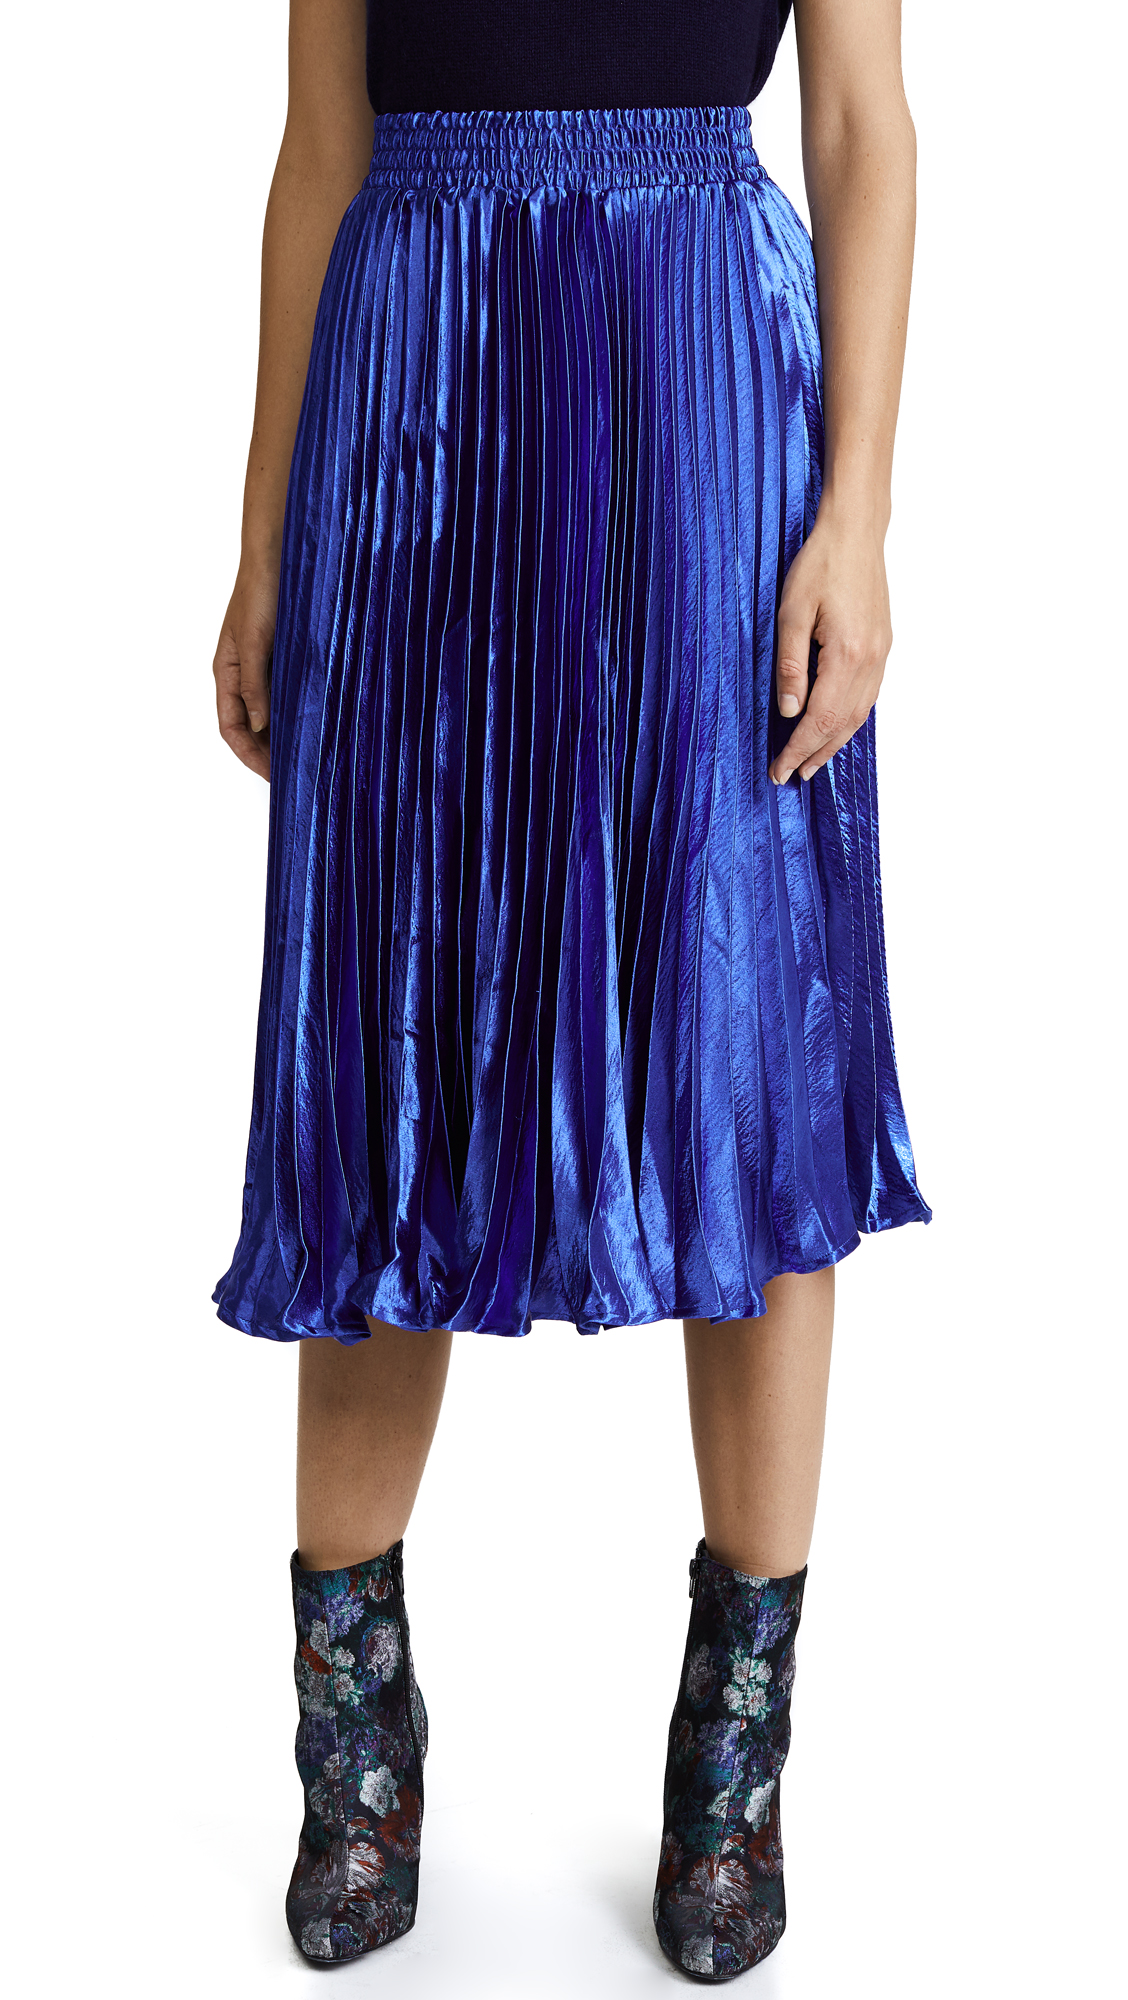 ENGLISH FACTORY Metallic Satin Pleated Skirt - Sapphire